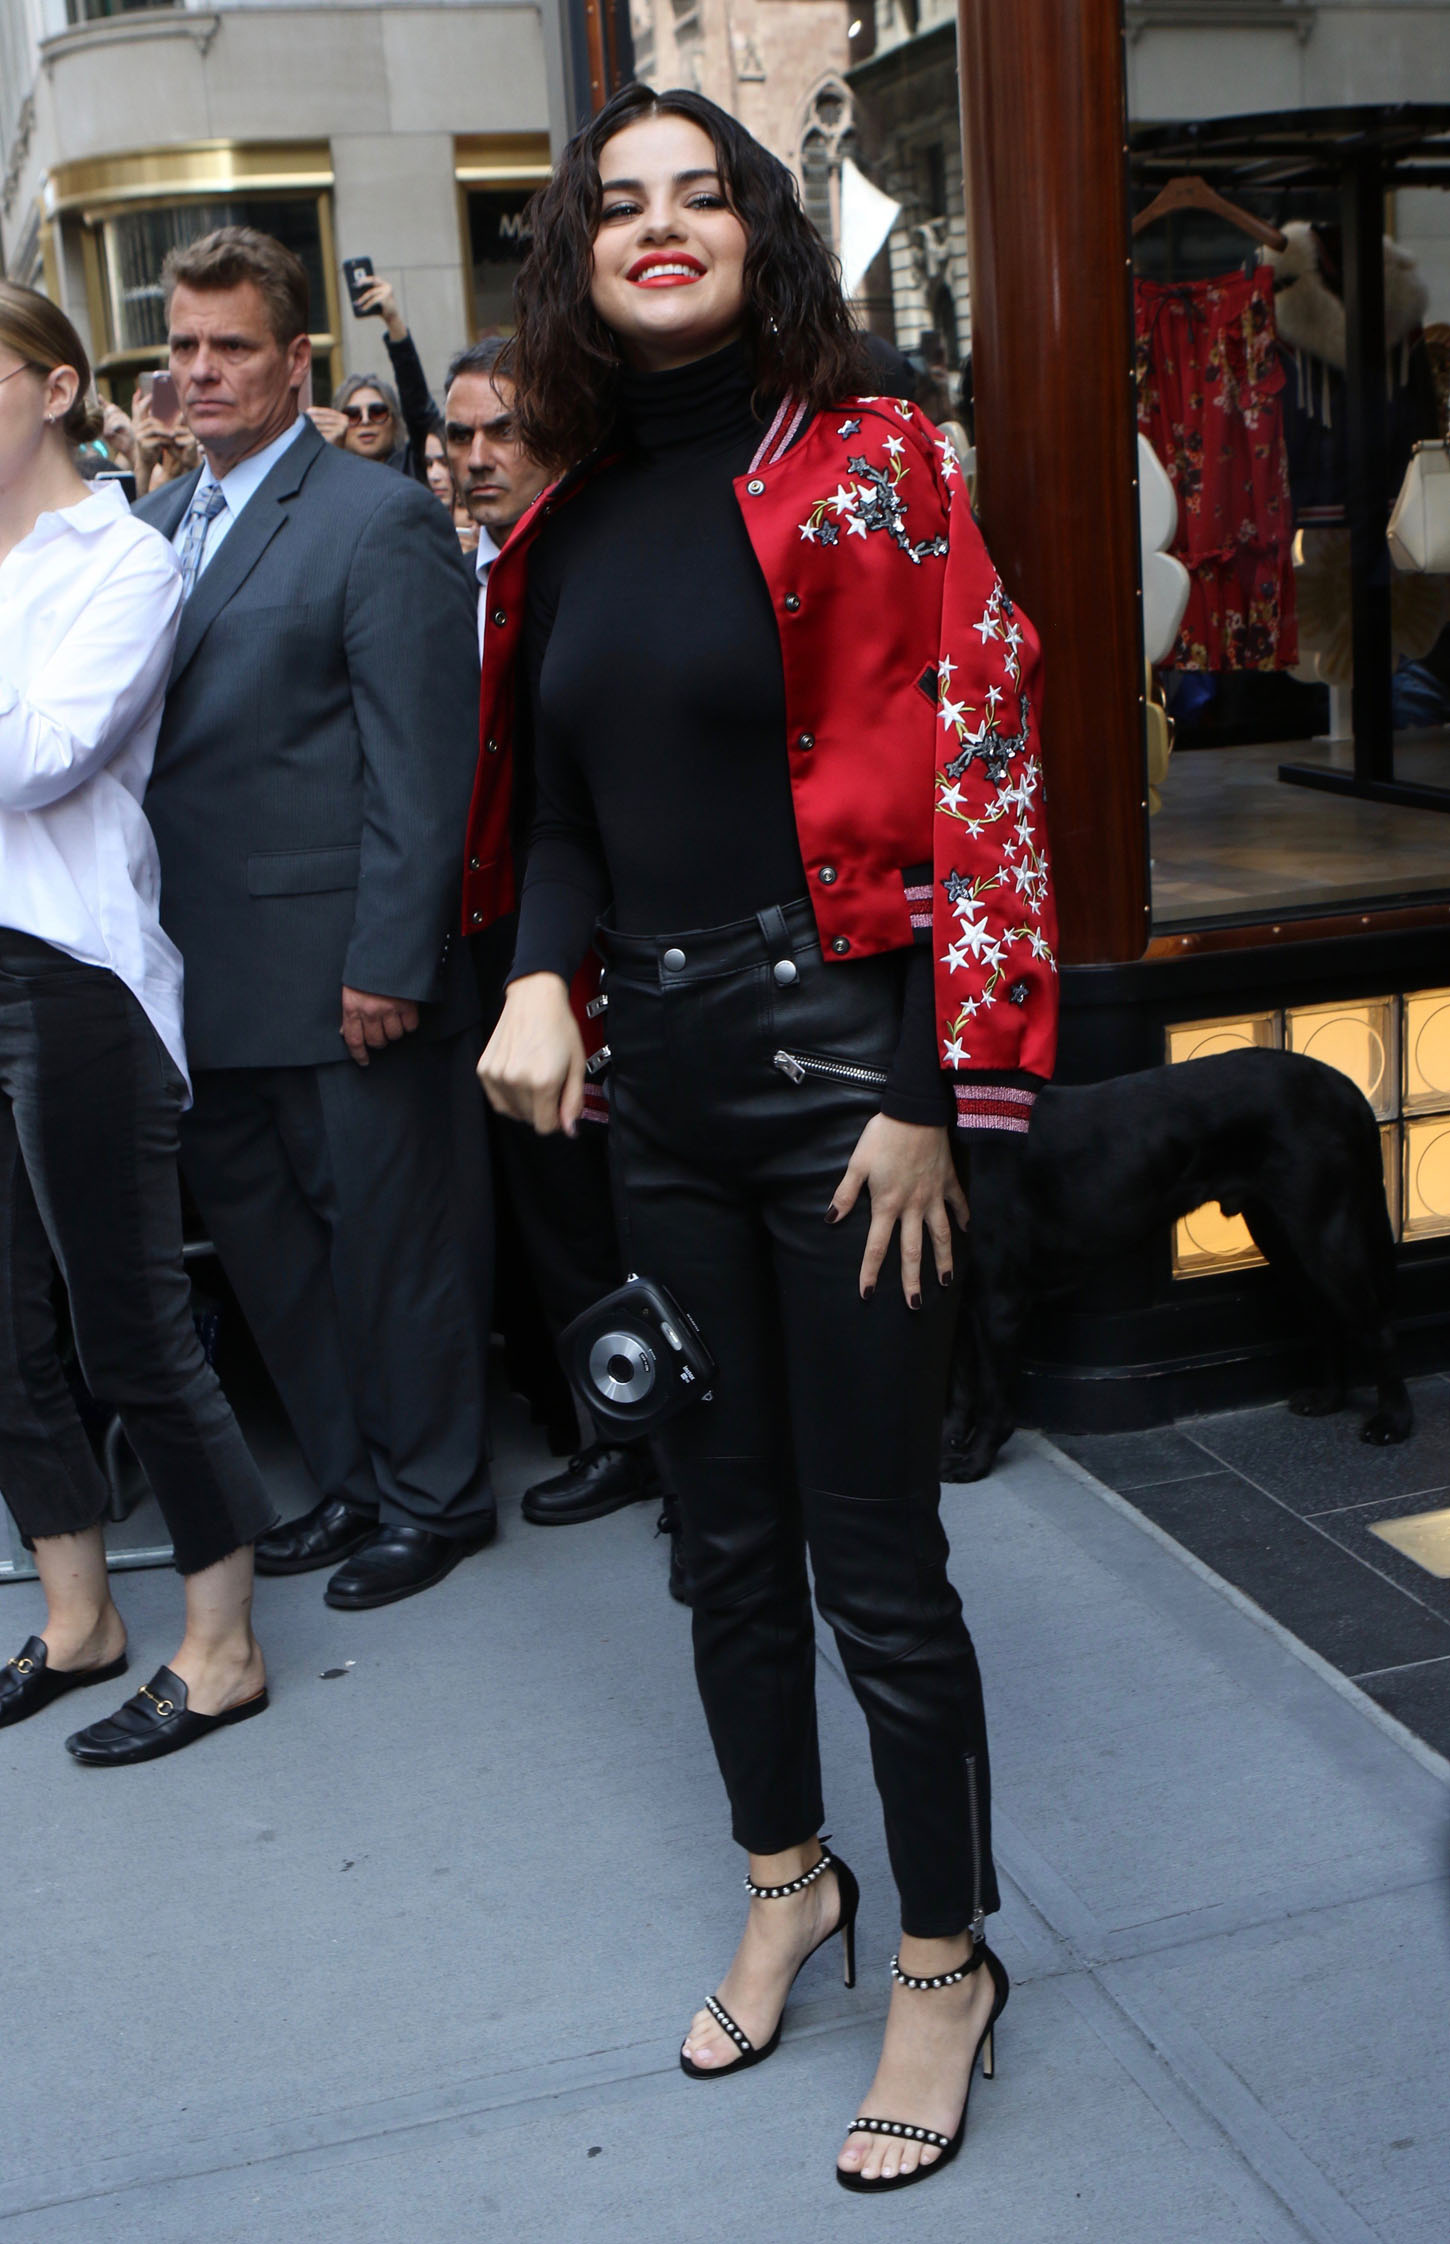 , New York, NY, 9/13/2017 - Selena Gomes Sighting in Manhattan  -Selena Gomes -Nancy Rivera/INSTARimages.com -Instar_Selena_Gomez_0730688598.JPG Ref.: infusny-220 Editorial Rights Managed Image - Please contact www.INSTARimages.com for licensing fee and rights: North America Inquiries: email sales@instarimages.com or call 212.414.0207 - UK Inquiries: email ben@instarimages.com or call + 7715 698 715 - Australia Inquiries: email sarah@instarimages.com.au  or call +02 9660 0500 – for any other Country, please email sales@instarimages.com.  Image or video may not be published in any way that is or might be deemed defamatory, libelous, pornographic, or obscene / Please consult our sales department for any clarification or question you may have - http://www.INSTARimages.com reserves the right to pursue unauthorized users of this image or video. If you are in violation of our intellectual property you may be liable for actual damages, loss of income, and profits you derive from the use of this image or video, and where appropriate, the cost of collection and/or statutory damage., Image: 349317163, License: Rights-managed, Restrictions: , Model Release: no, Credit line: Profimedia, INSTAR Images